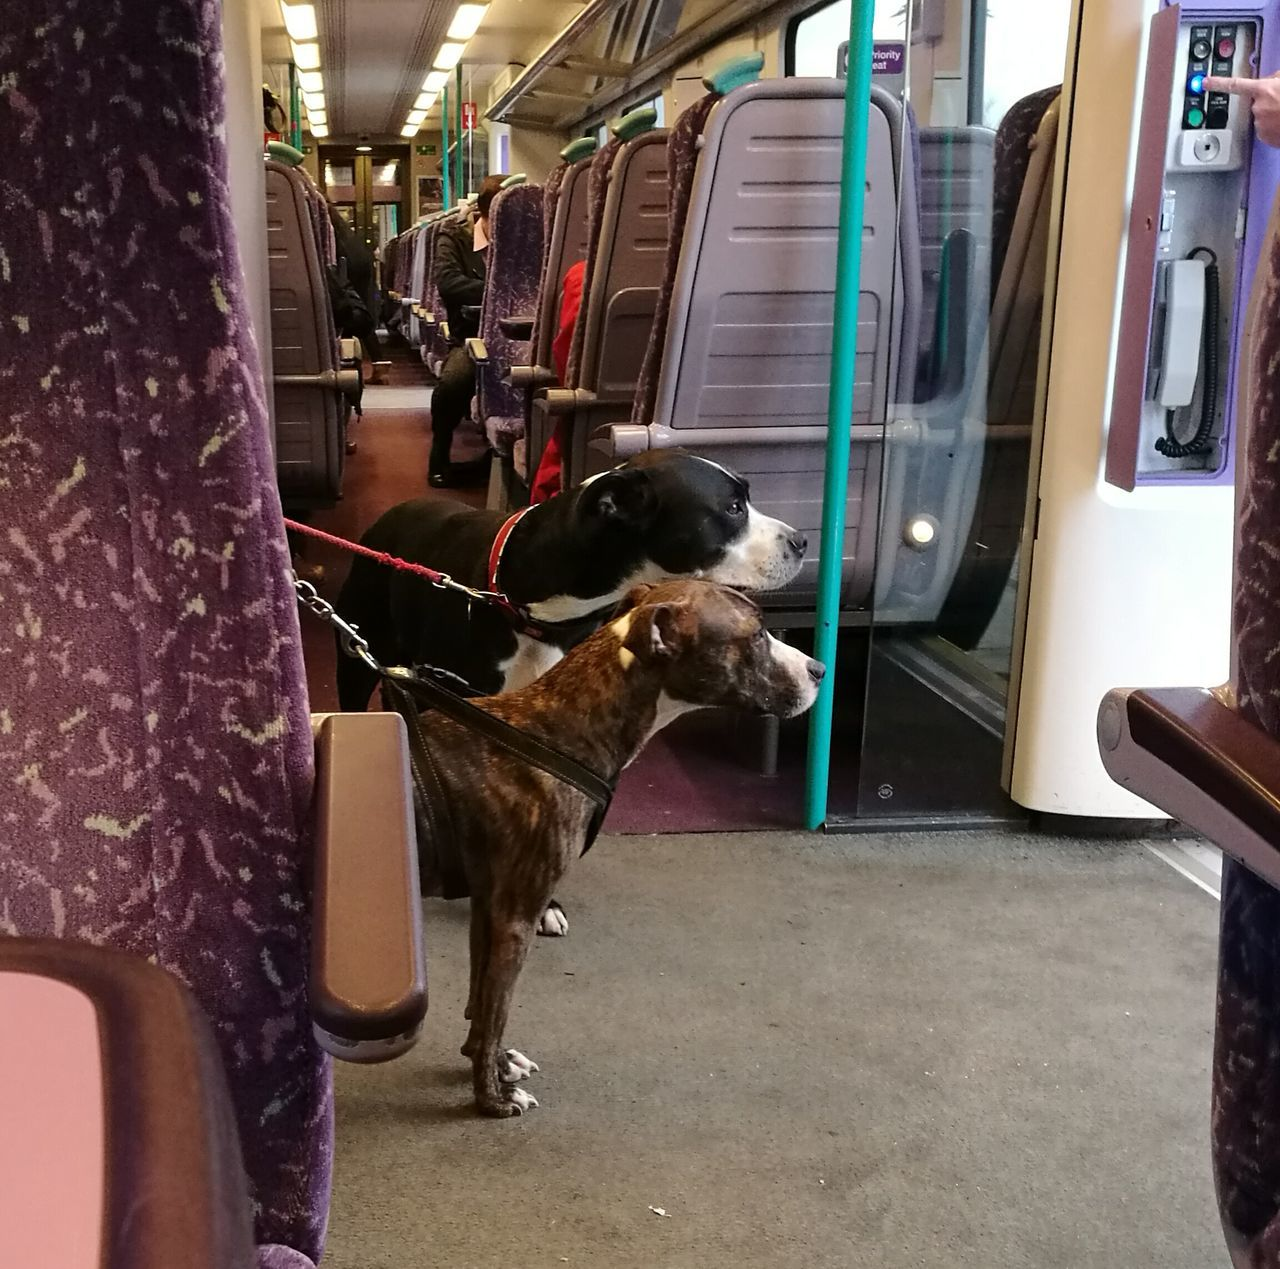 Dogs On The Train Domestic Animals Mammal Pets Men Low Section Adult Indoors  Adults Only One Person People Day